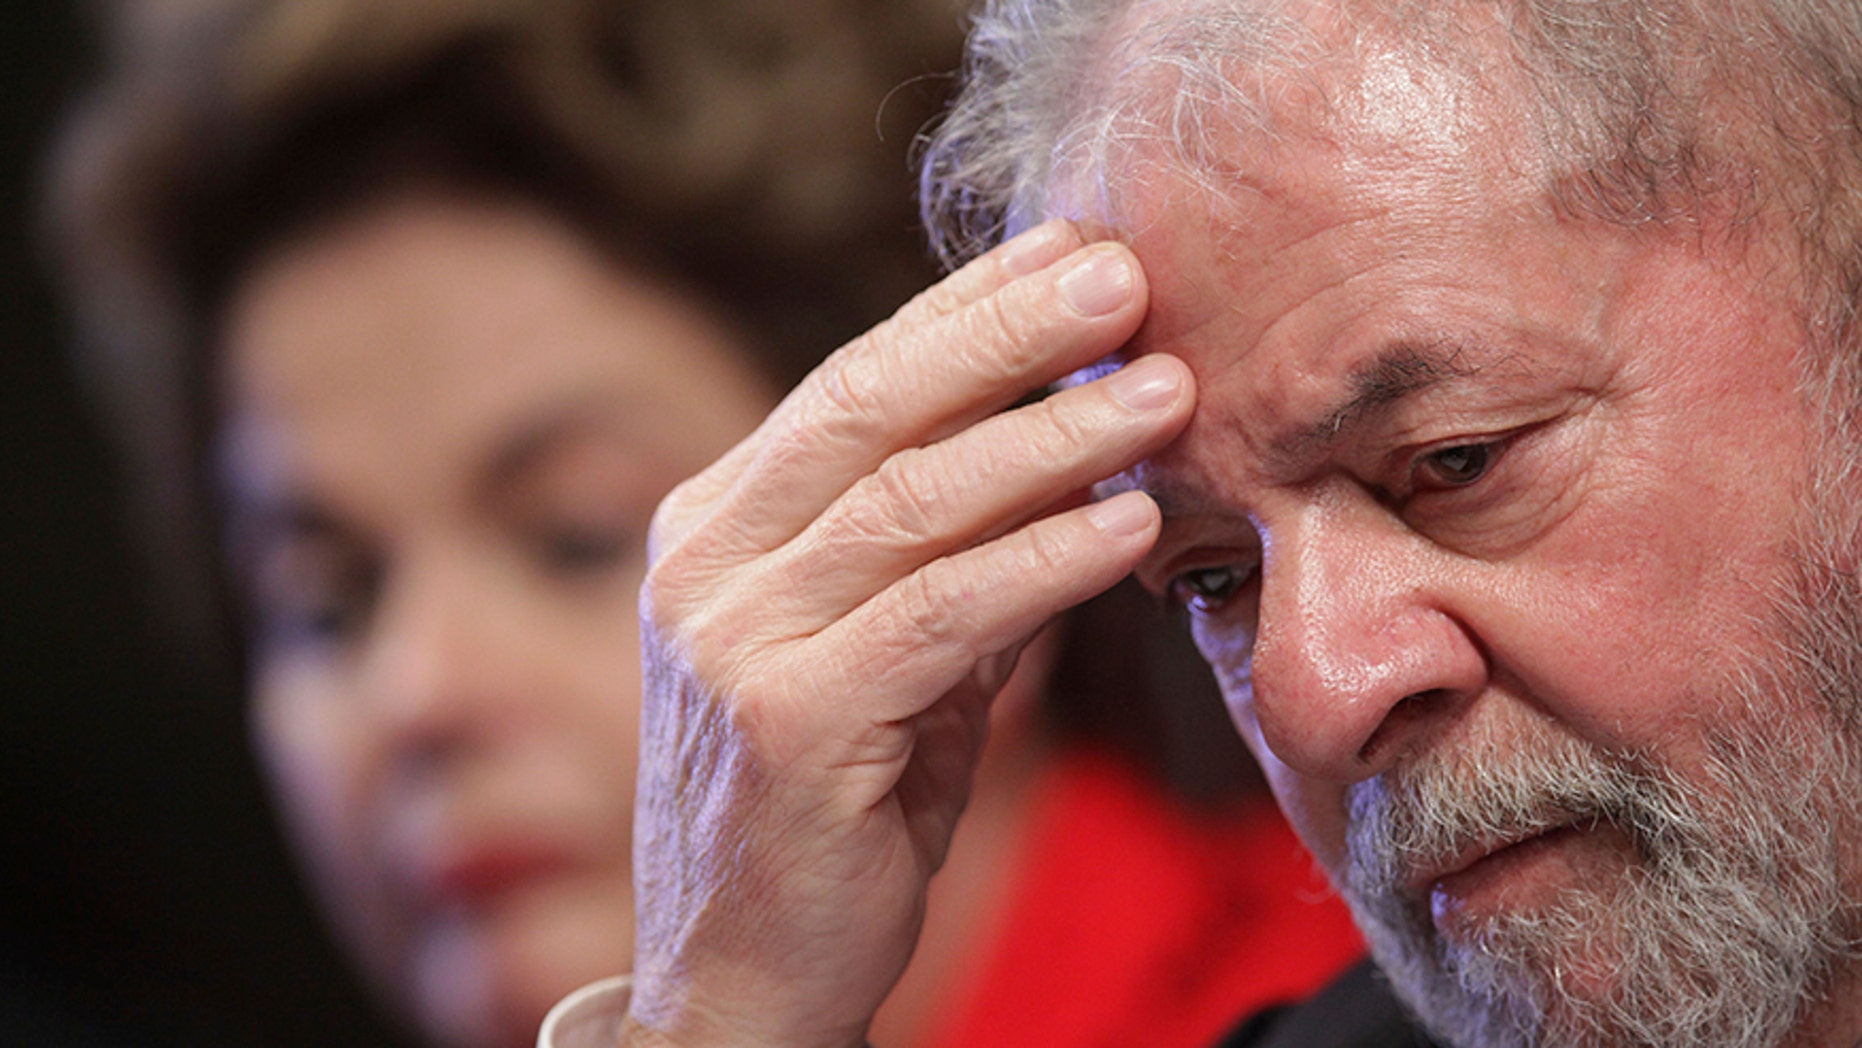 FILE - In this July 5, 2017 file photo, Brazil's Former President Luiz Inacio Lula da Silva attends the inauguration ceremony for the new leadership of the Workers' Party, with ousted President Dilma Rousseff, behind, in Brasilia, Brazil. A Brazilian federal judge has convicted the former president of corruption and money laundering on Wednesday, July 12, 2017. (AP Photo/Eraldo Peres, File)